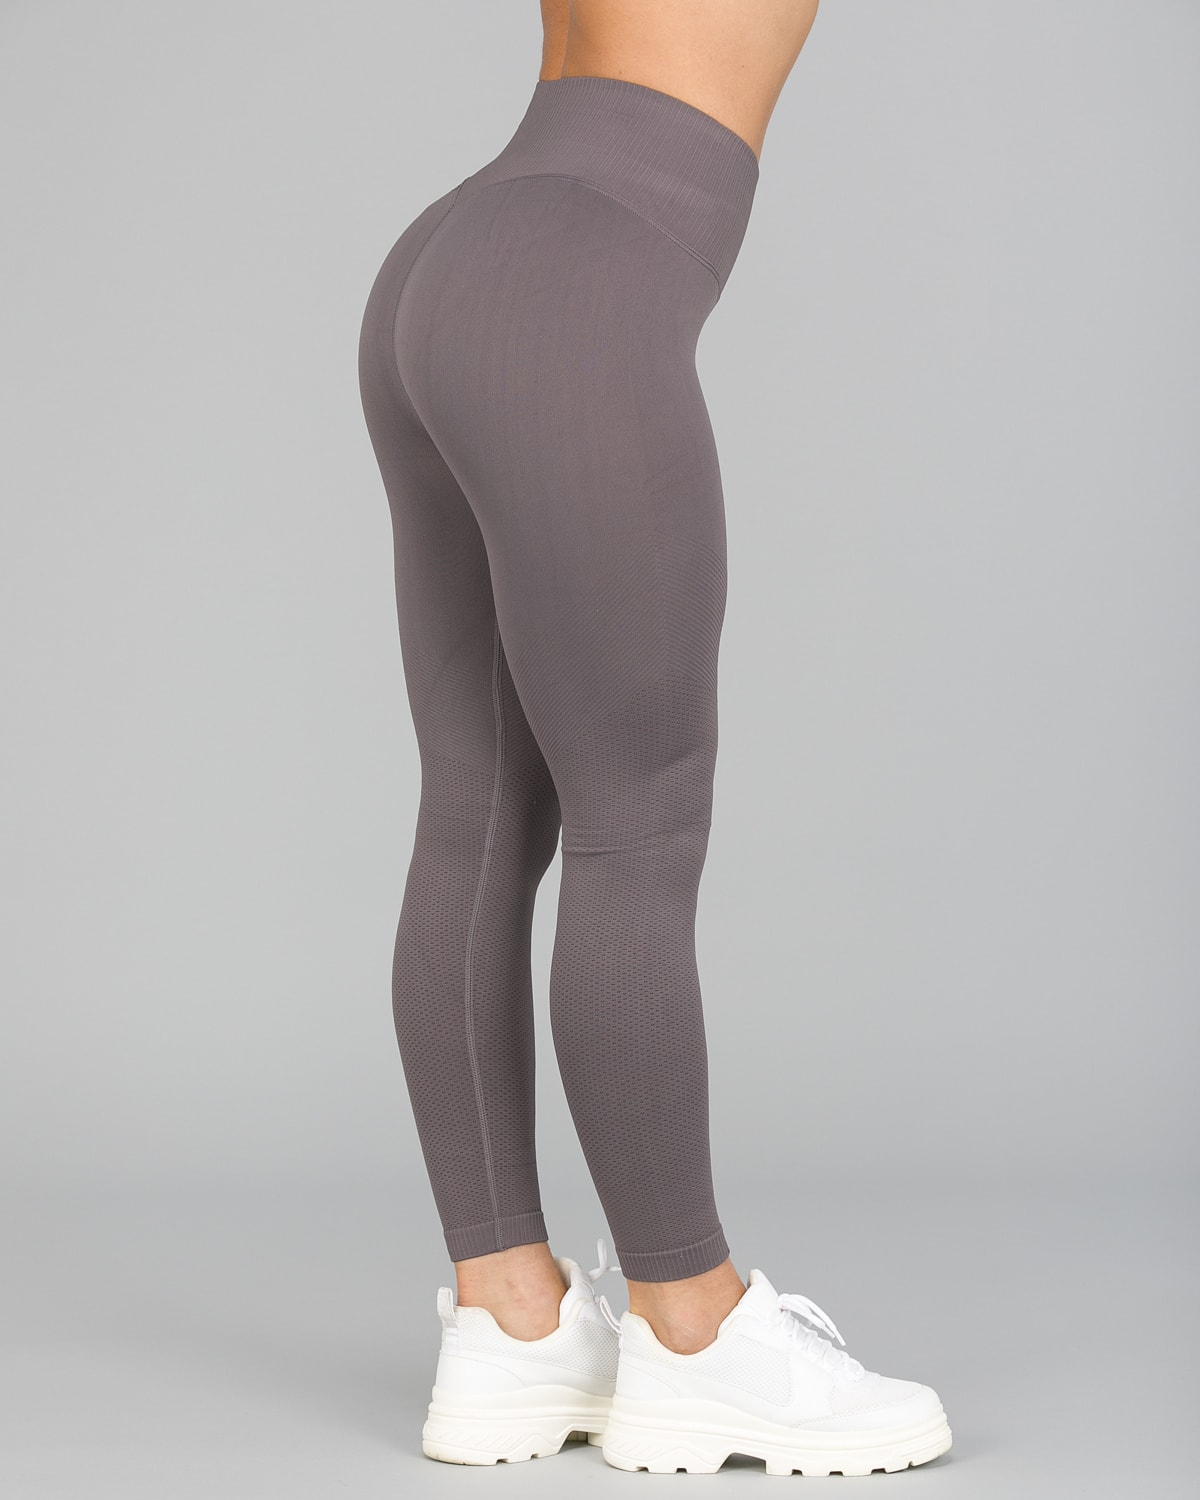 Aim'n Concrete Attention Seamless Tights11